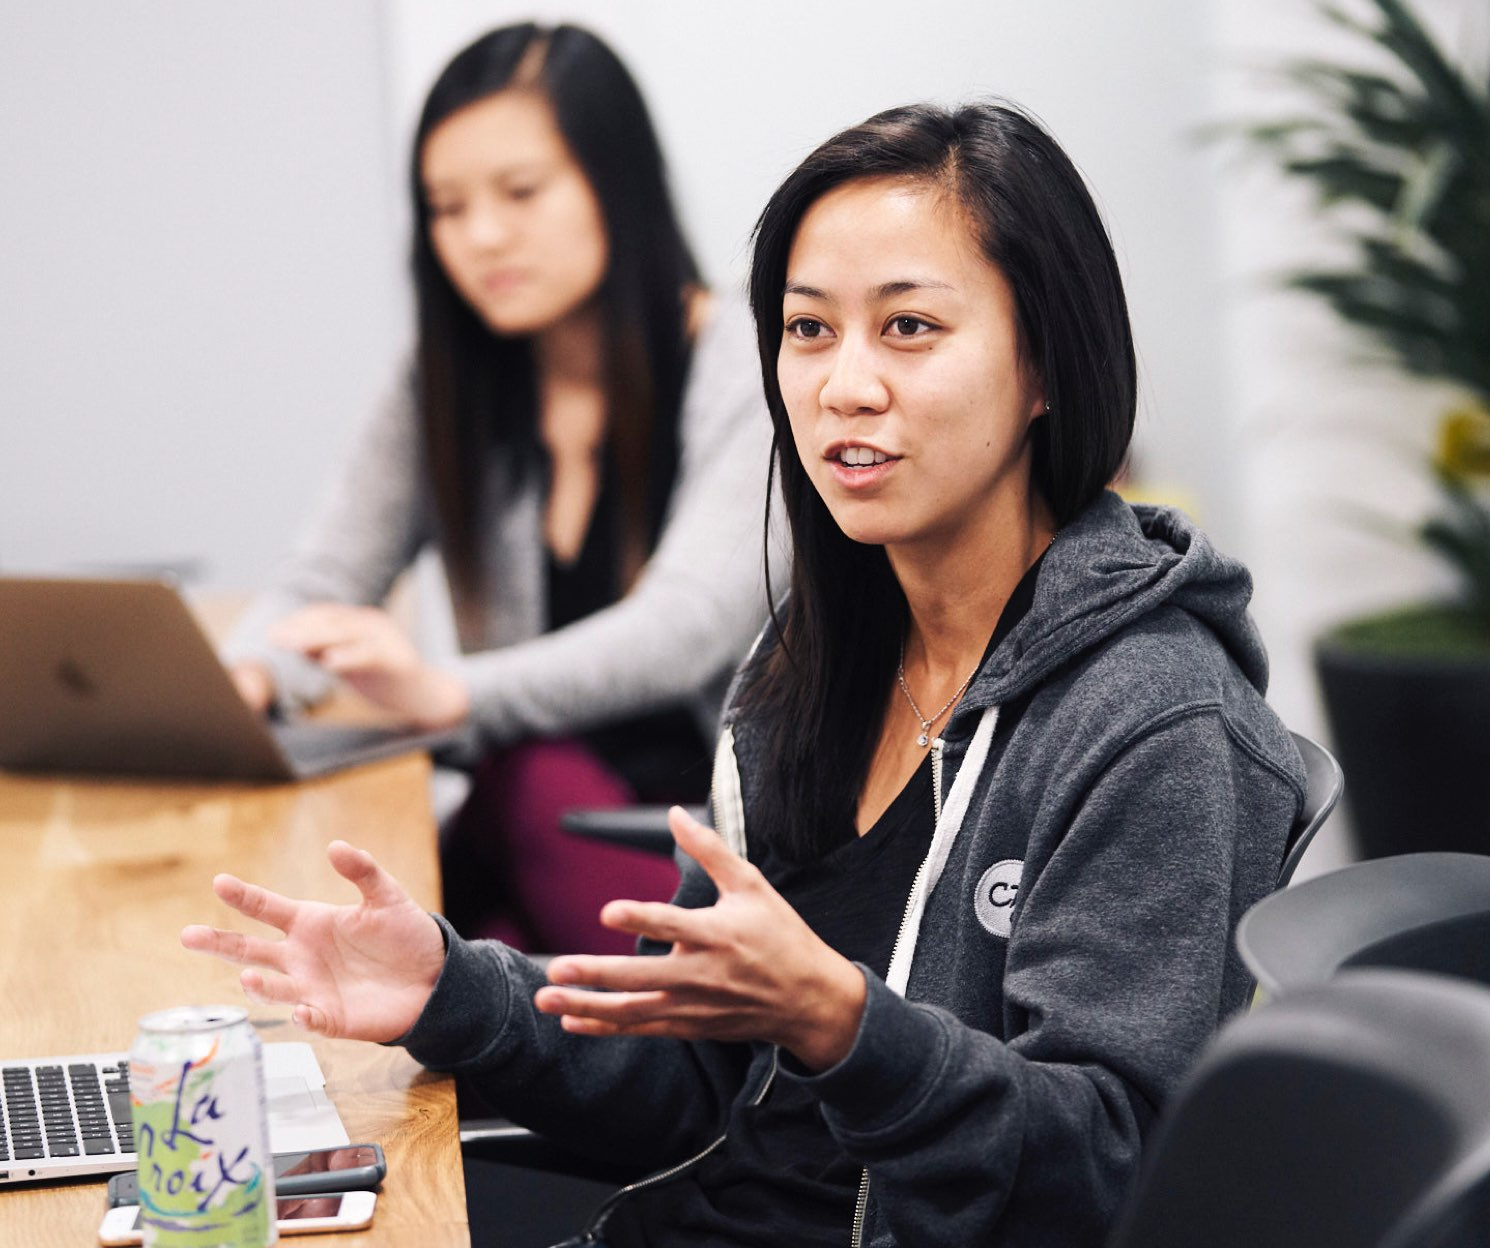 September 21, 2018 | Stephanie Nguyen, Recruitment, Jennifer Tang, Product Design, in a meeting at CZI about the upcoming Grace Hopper Celebration of Women in Computing Conference. Photograph by An Rong Xu